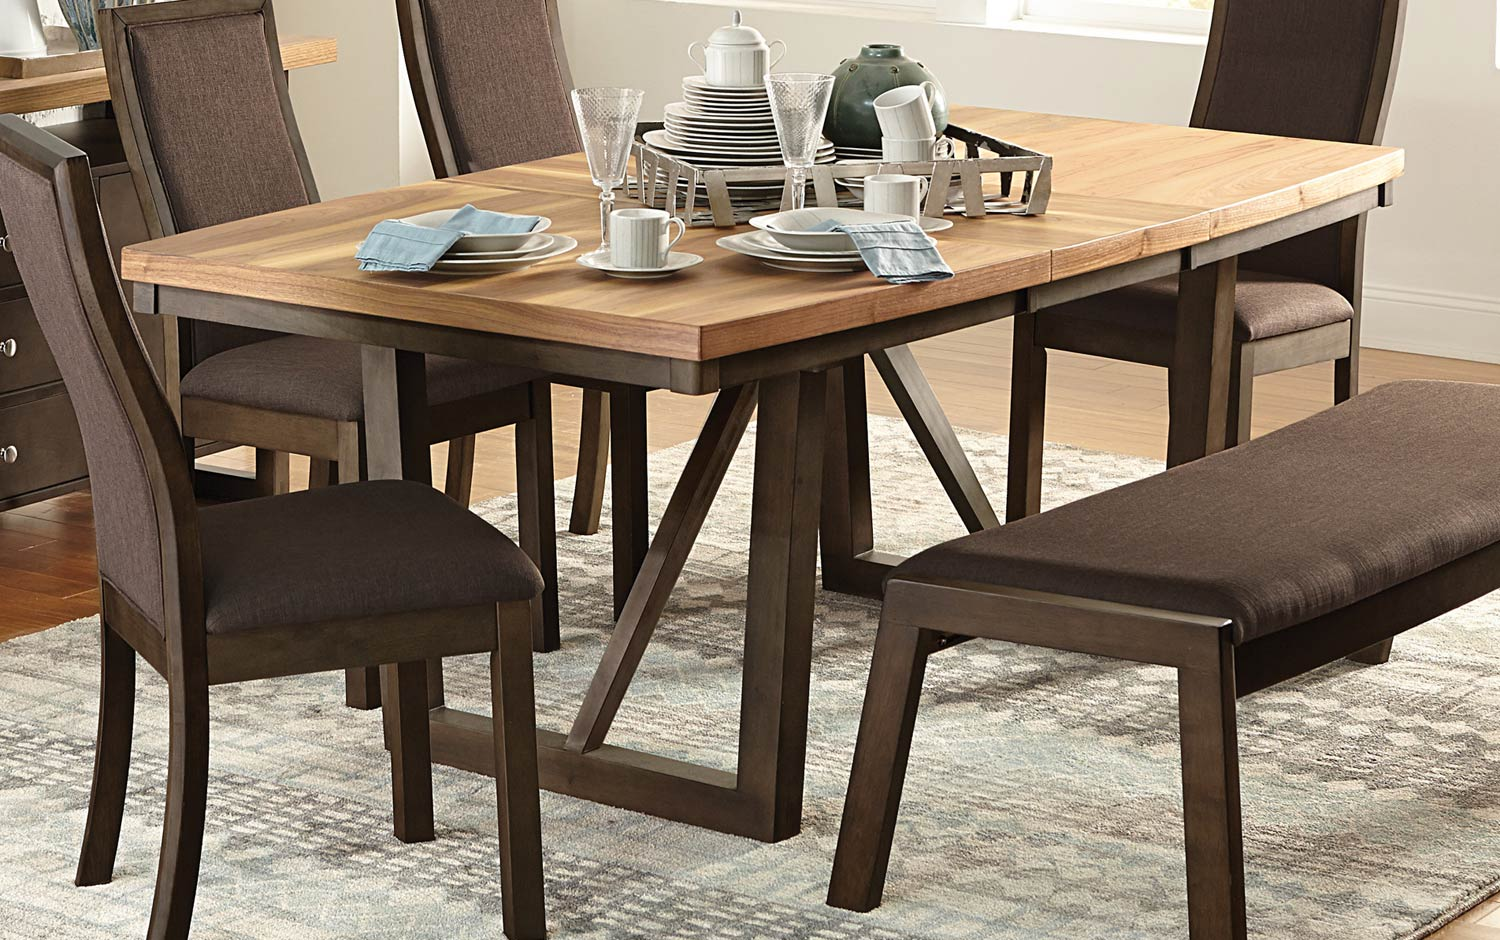 Homelegance Compson Dining Table - Natural/Walnut